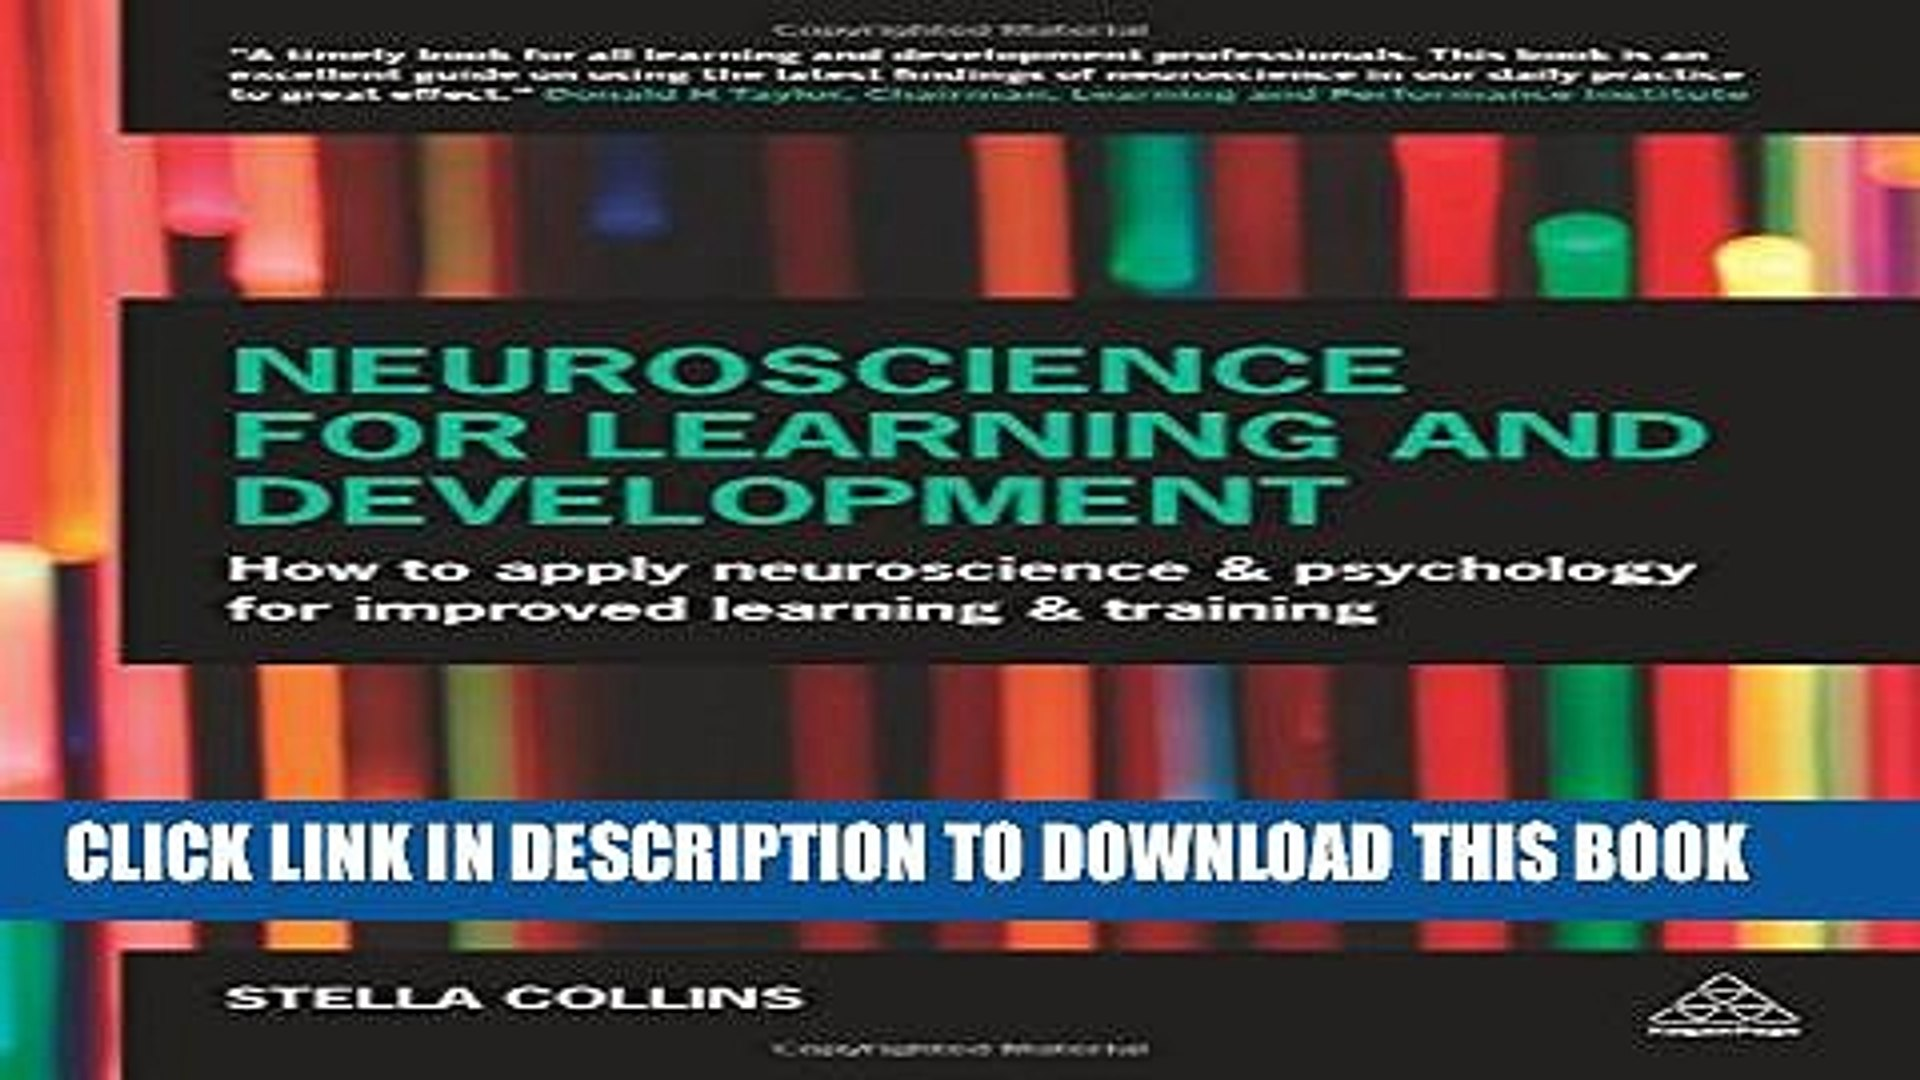 New Book Neuroscience for Learning and Development: How to Apply Neuroscience and Psychology for